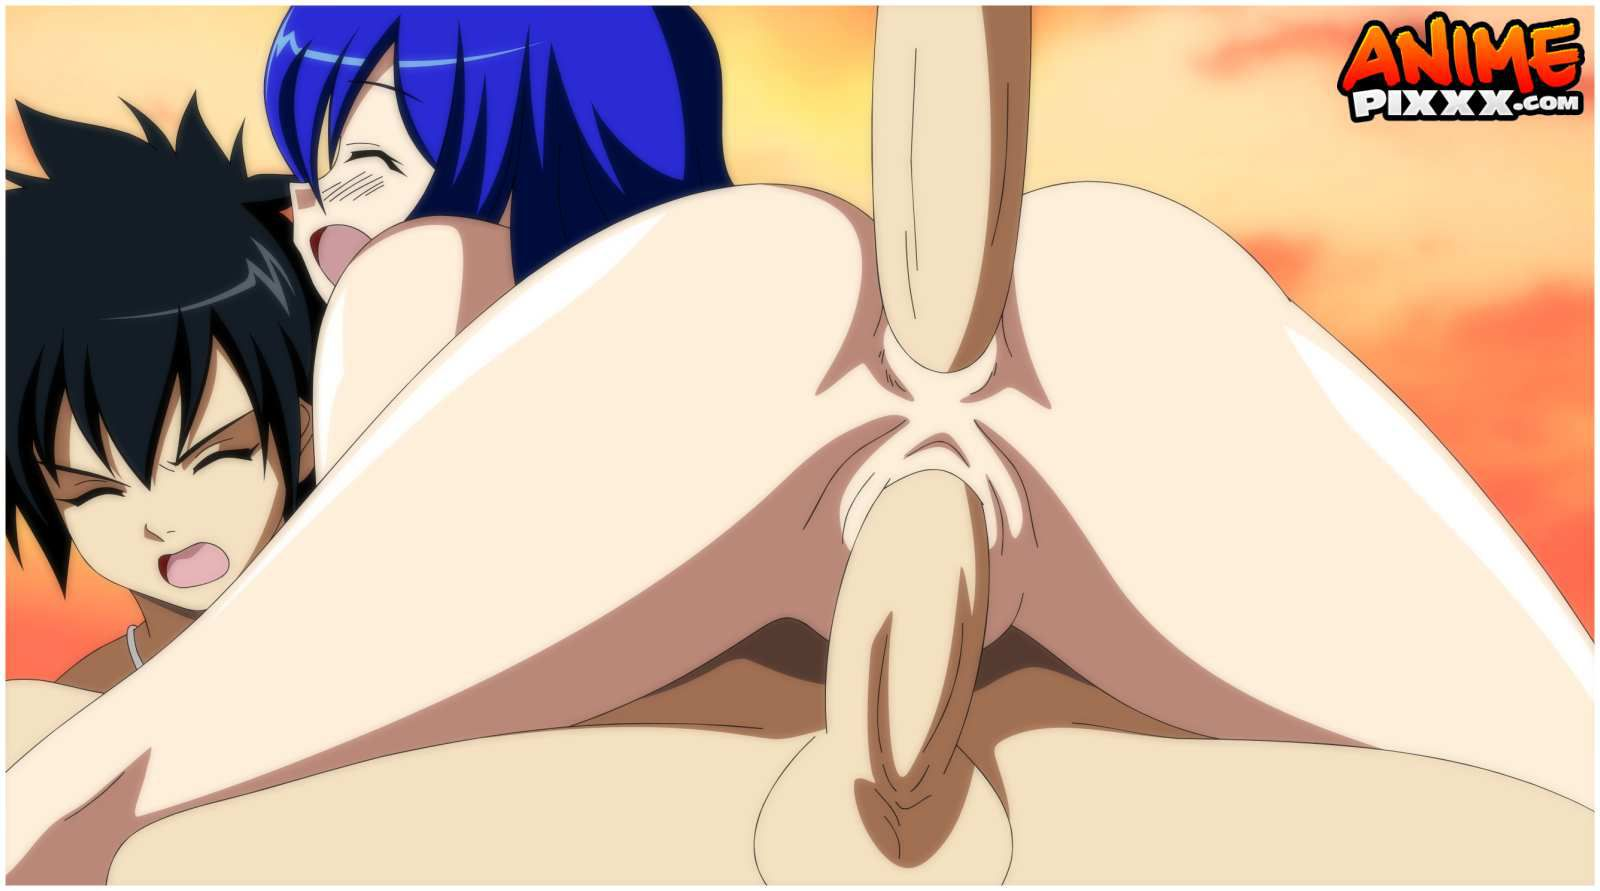 Fairy tail wandy sex nudes download